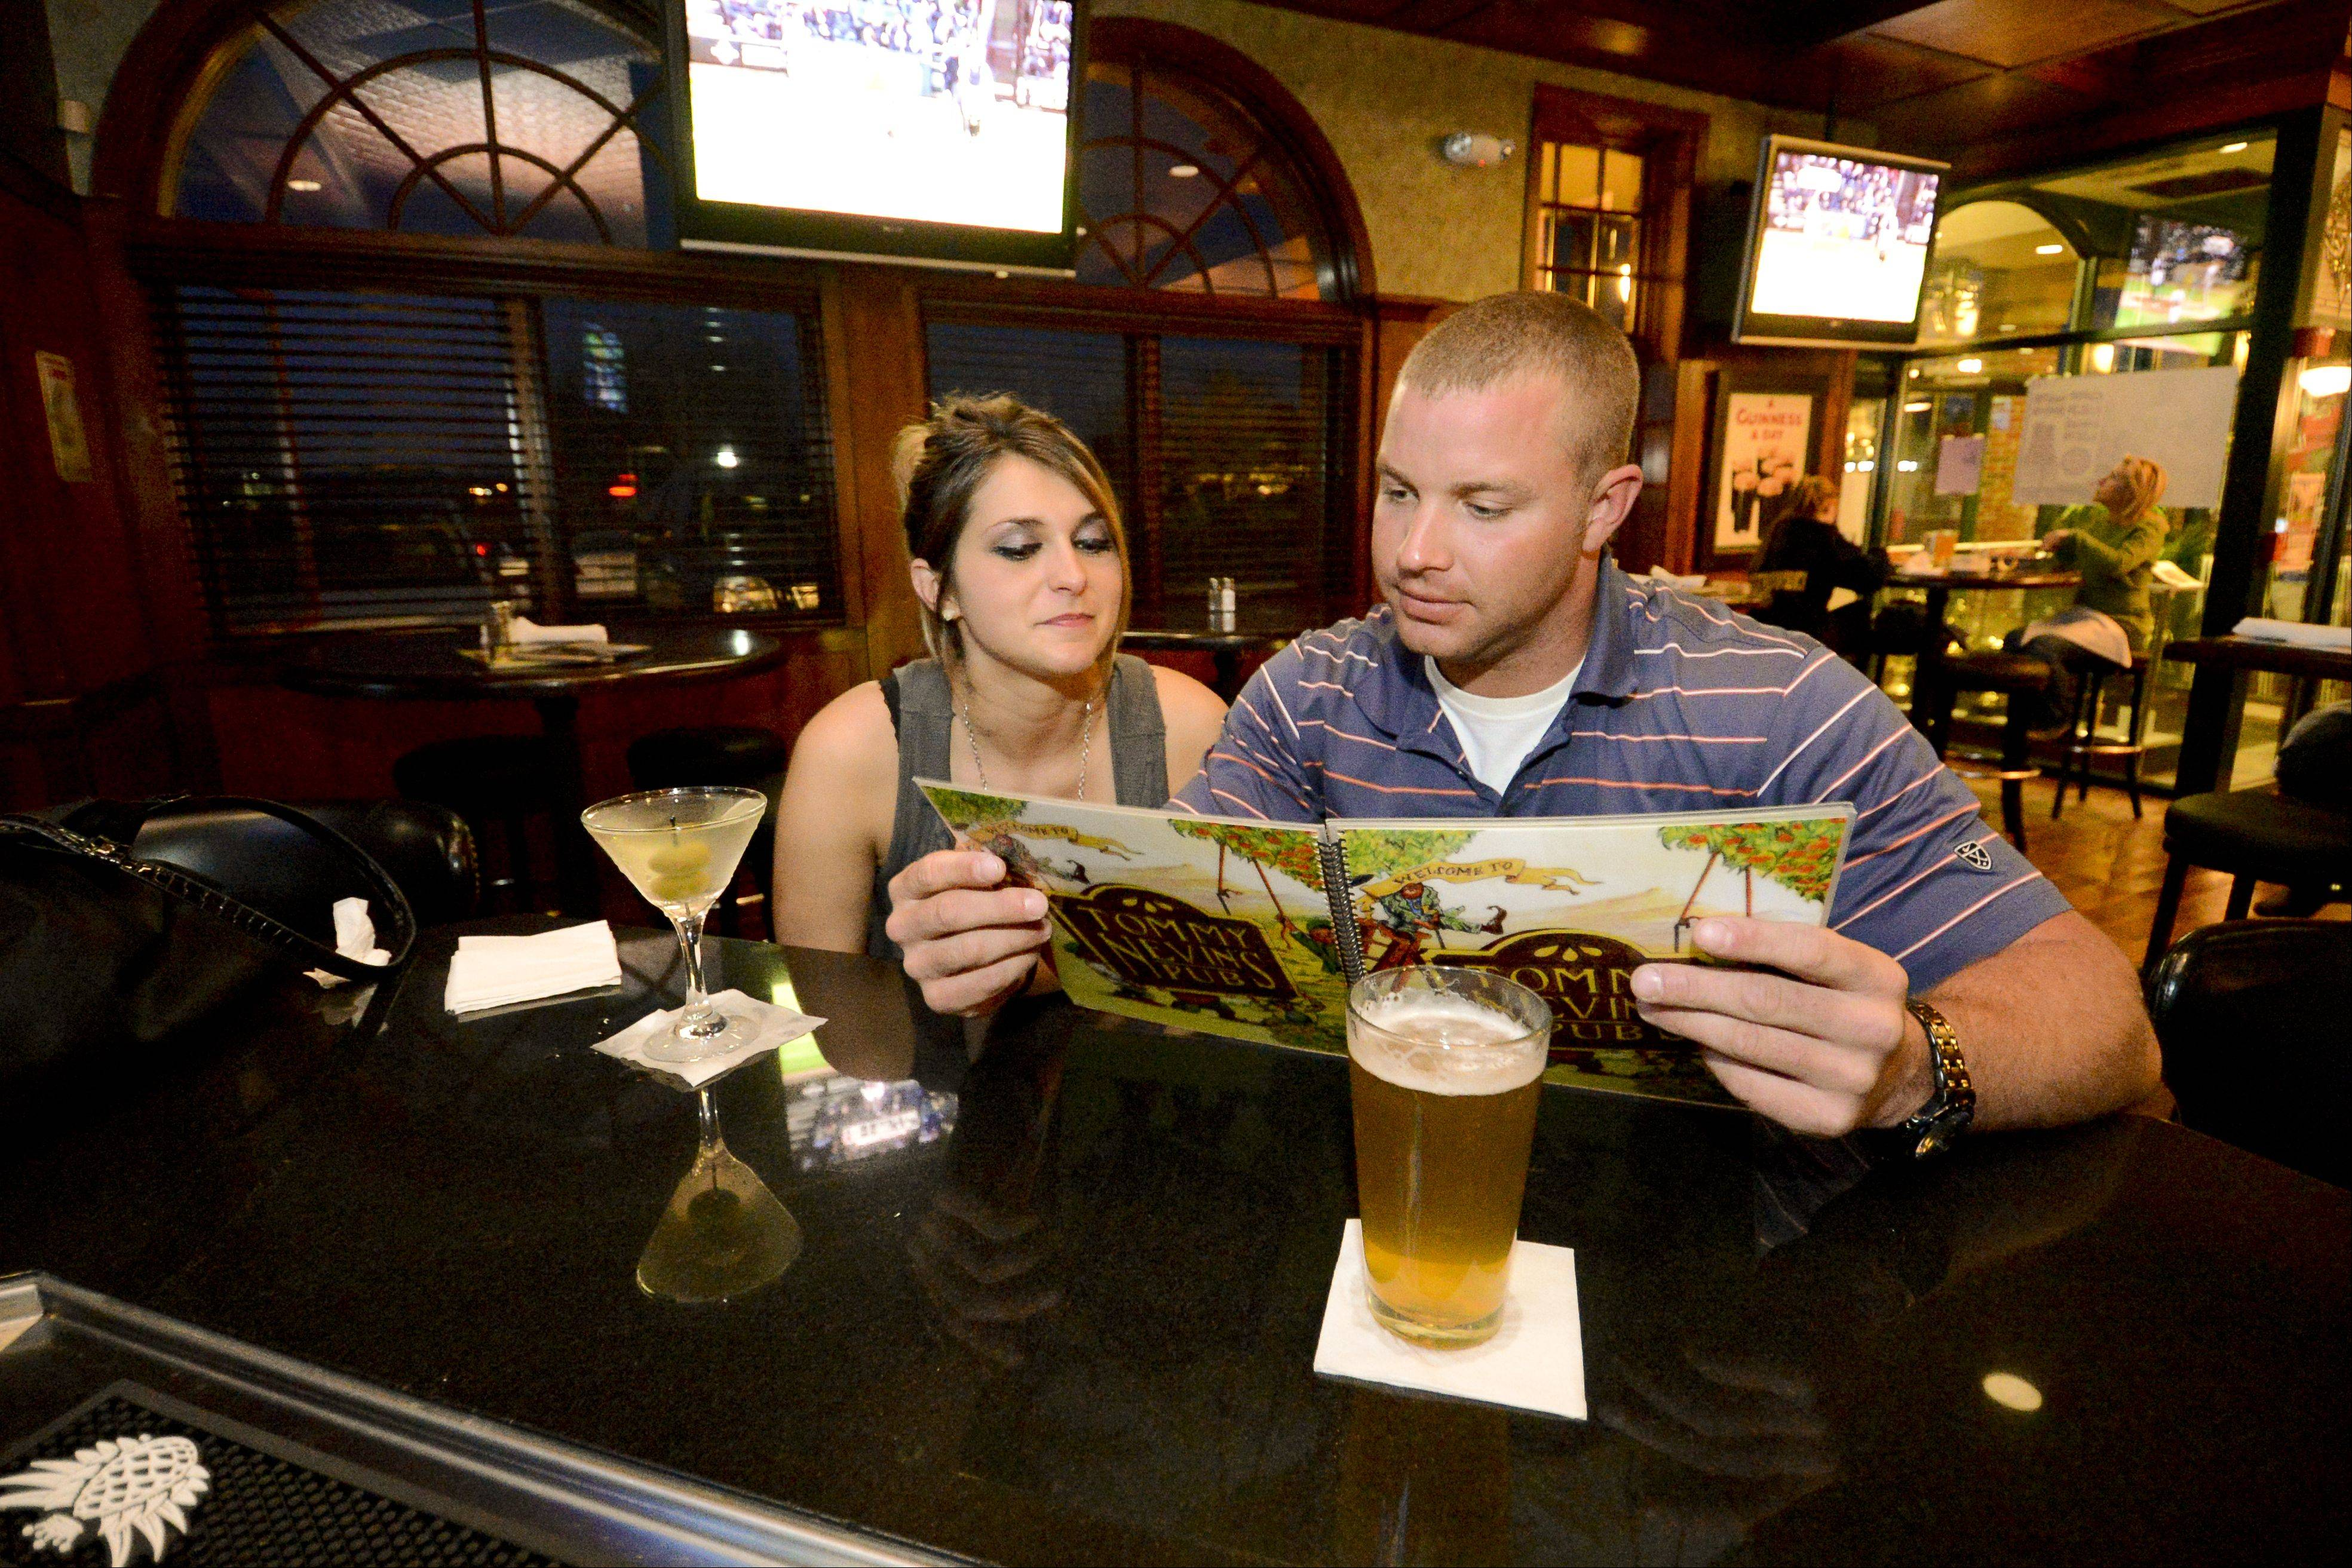 Keri Koser and Mark Swanson check out the extensive drink menu at Tommy Nevin's Pub.